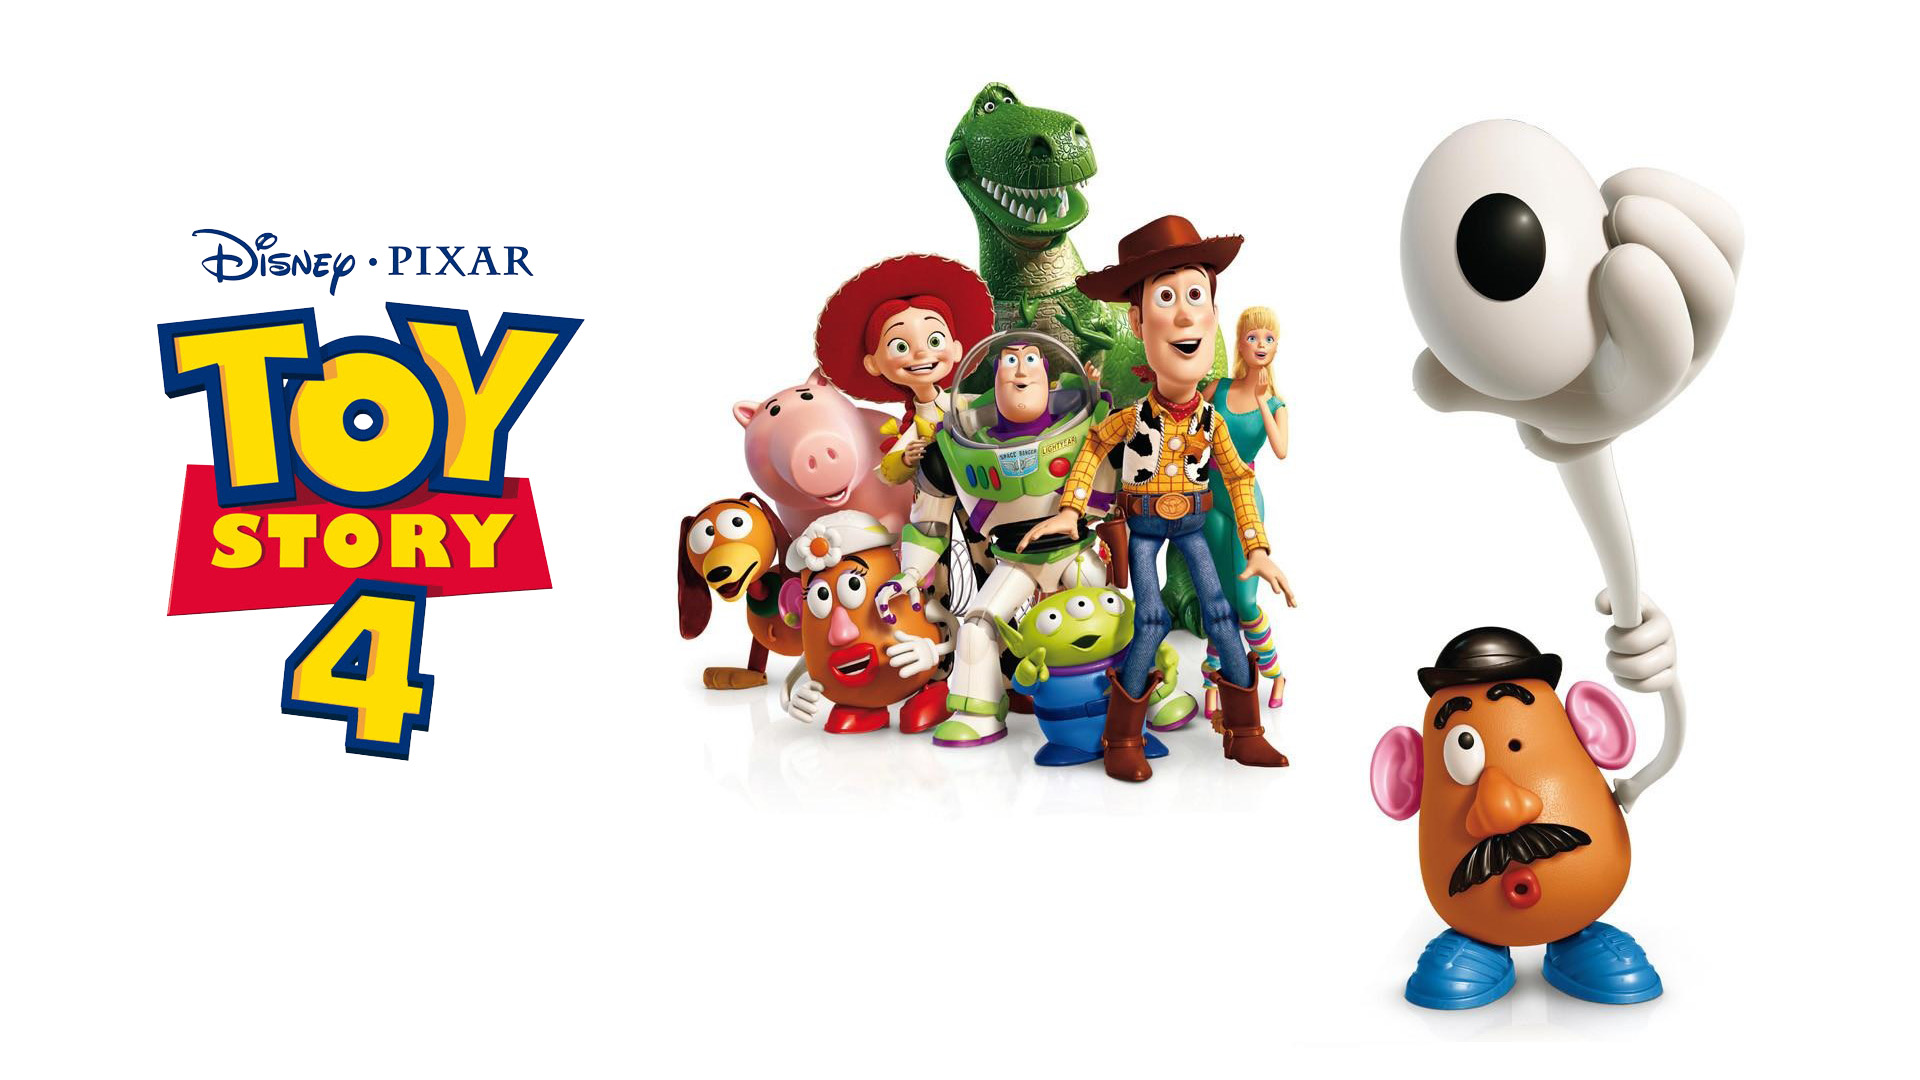 Toy Story 4 Toys : Tom hanks reveals toy story is in production todd hancock